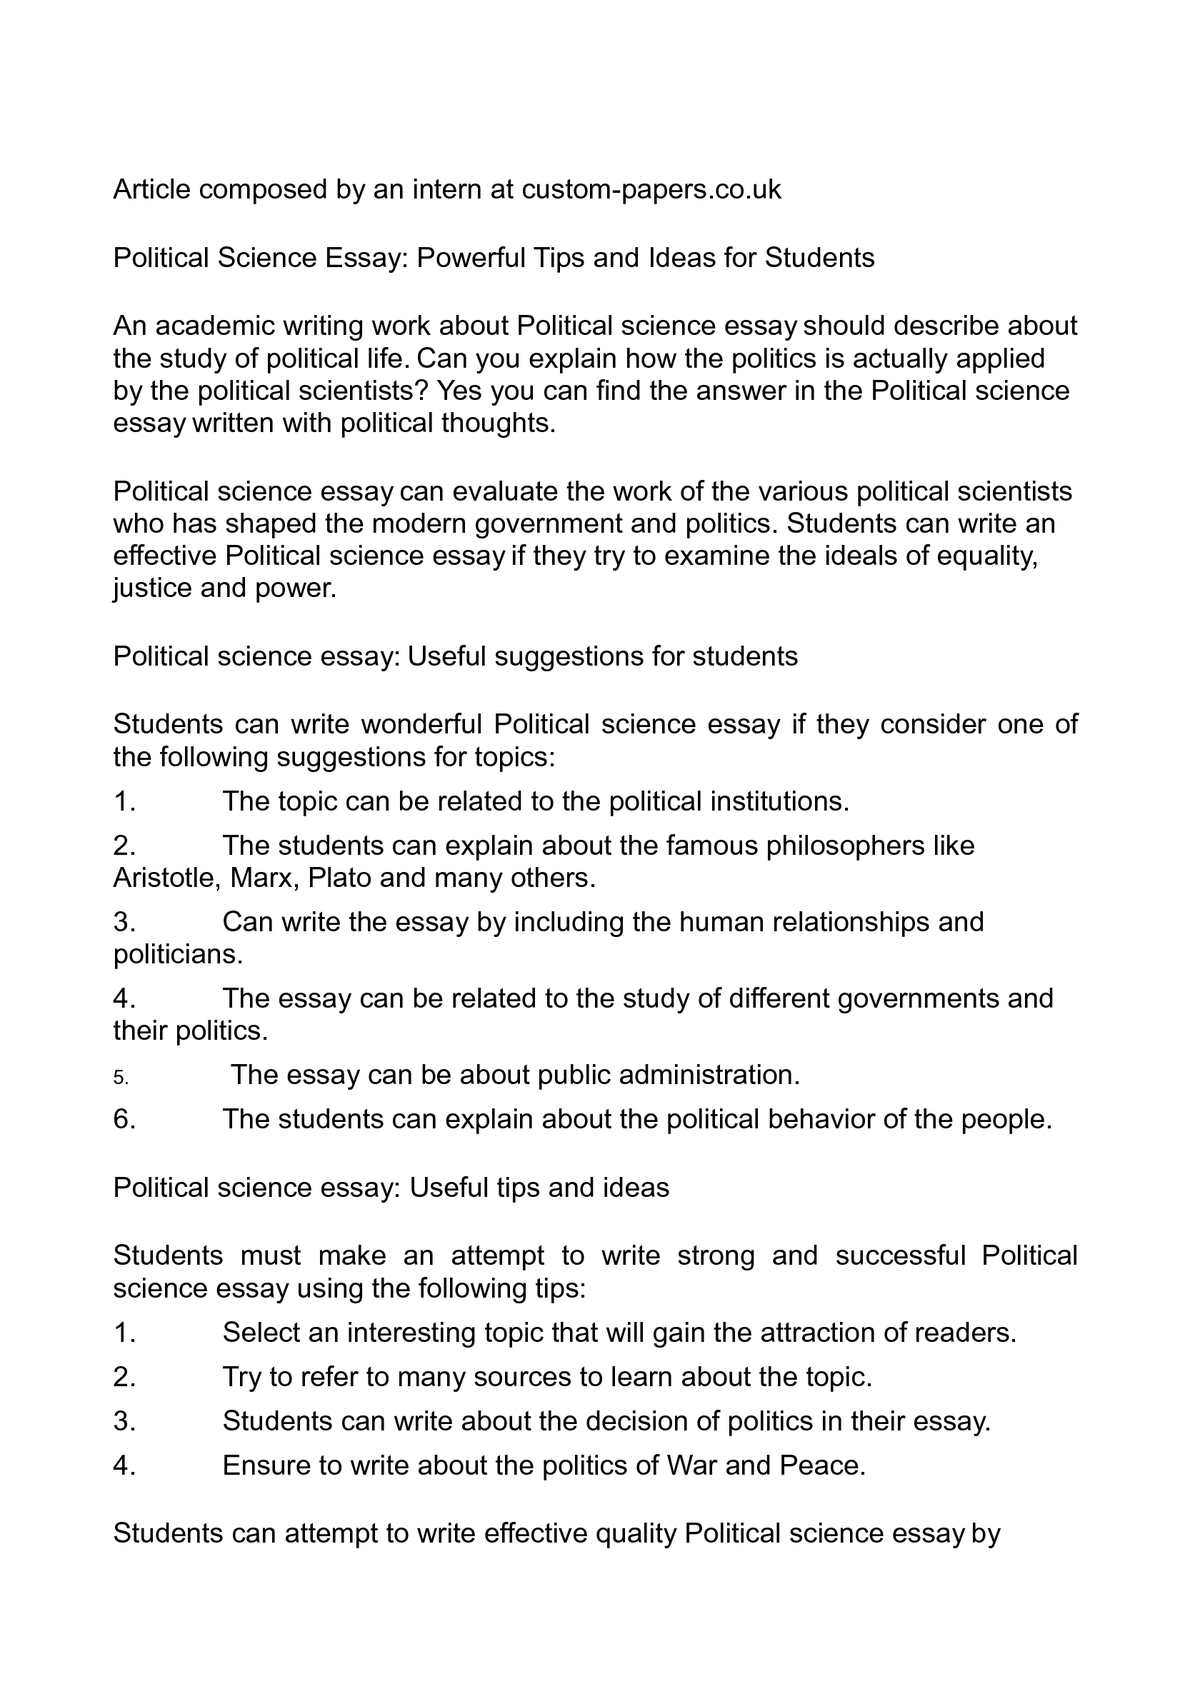 calamo   political science essay powerful tips and ideas